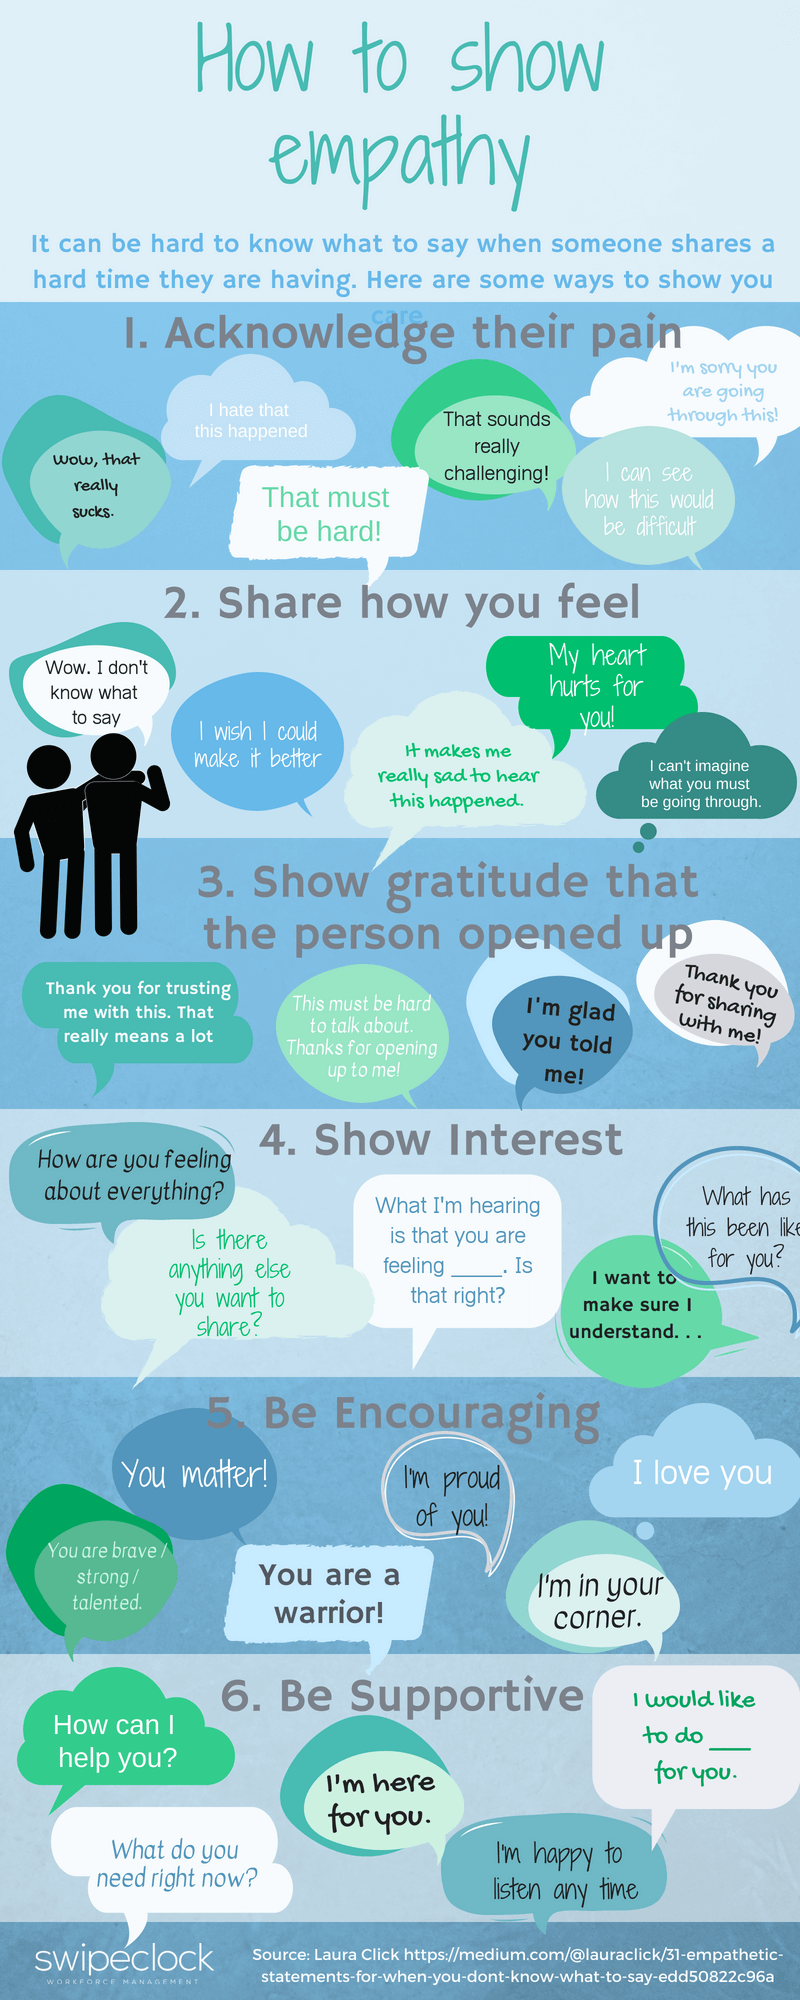 How to show empathy infographic